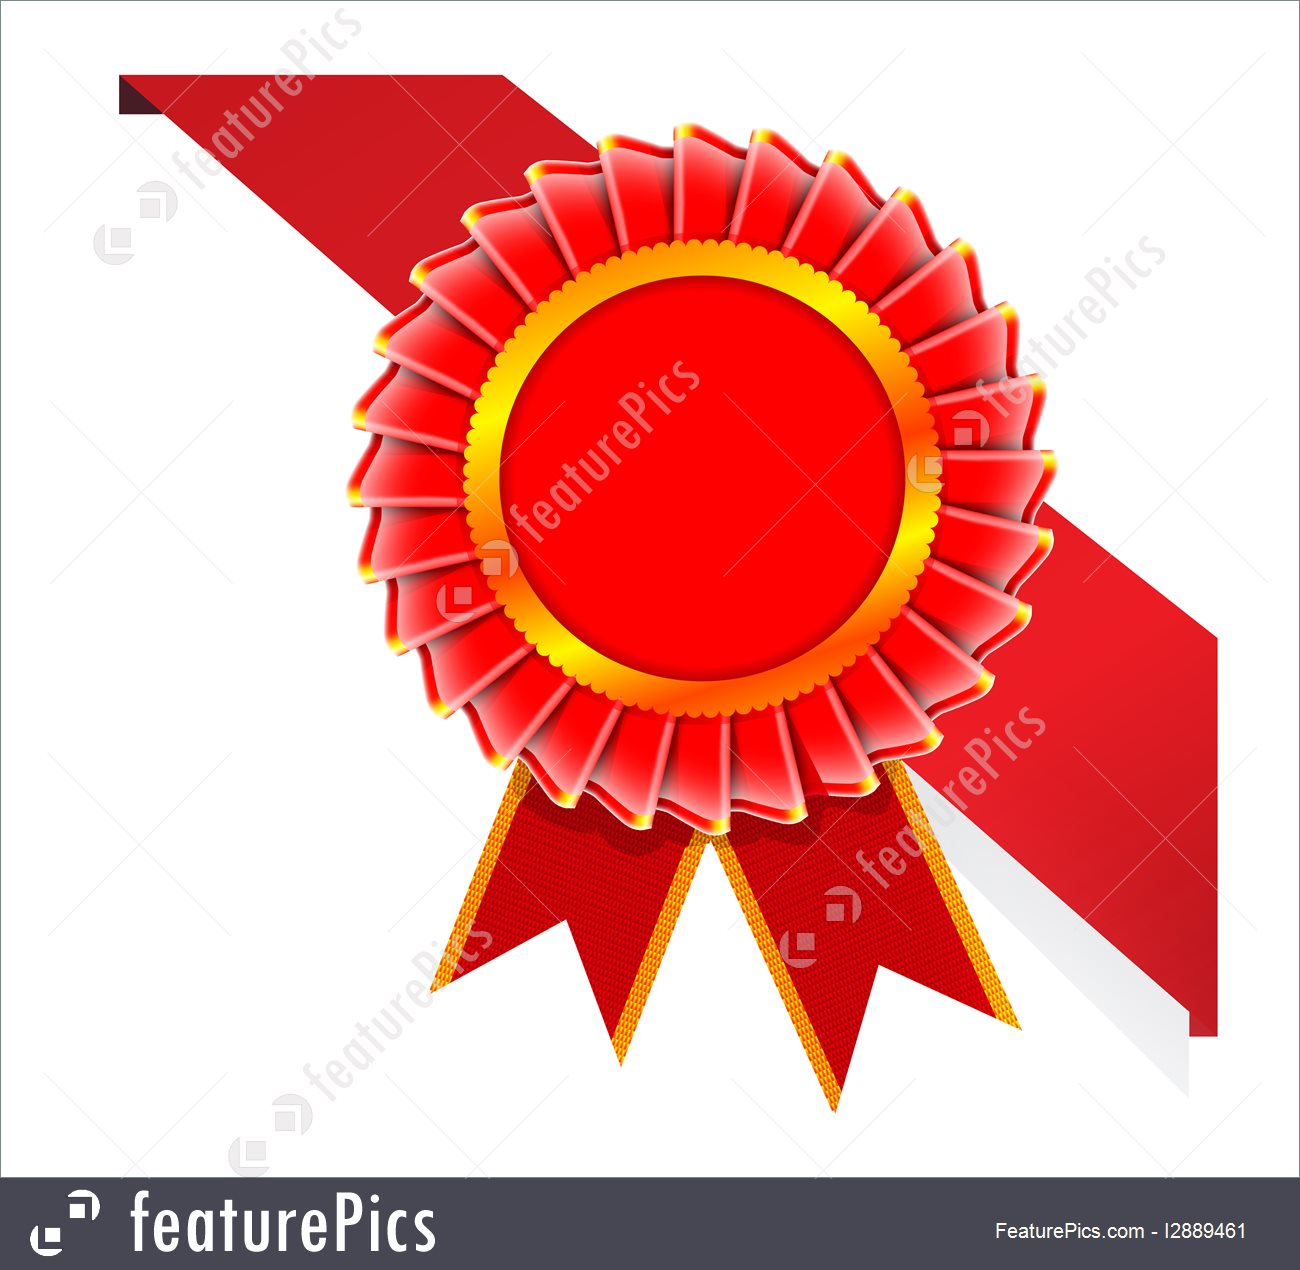 Emblems And Symbols: Vector Corner Ribbon And Quality Certificate